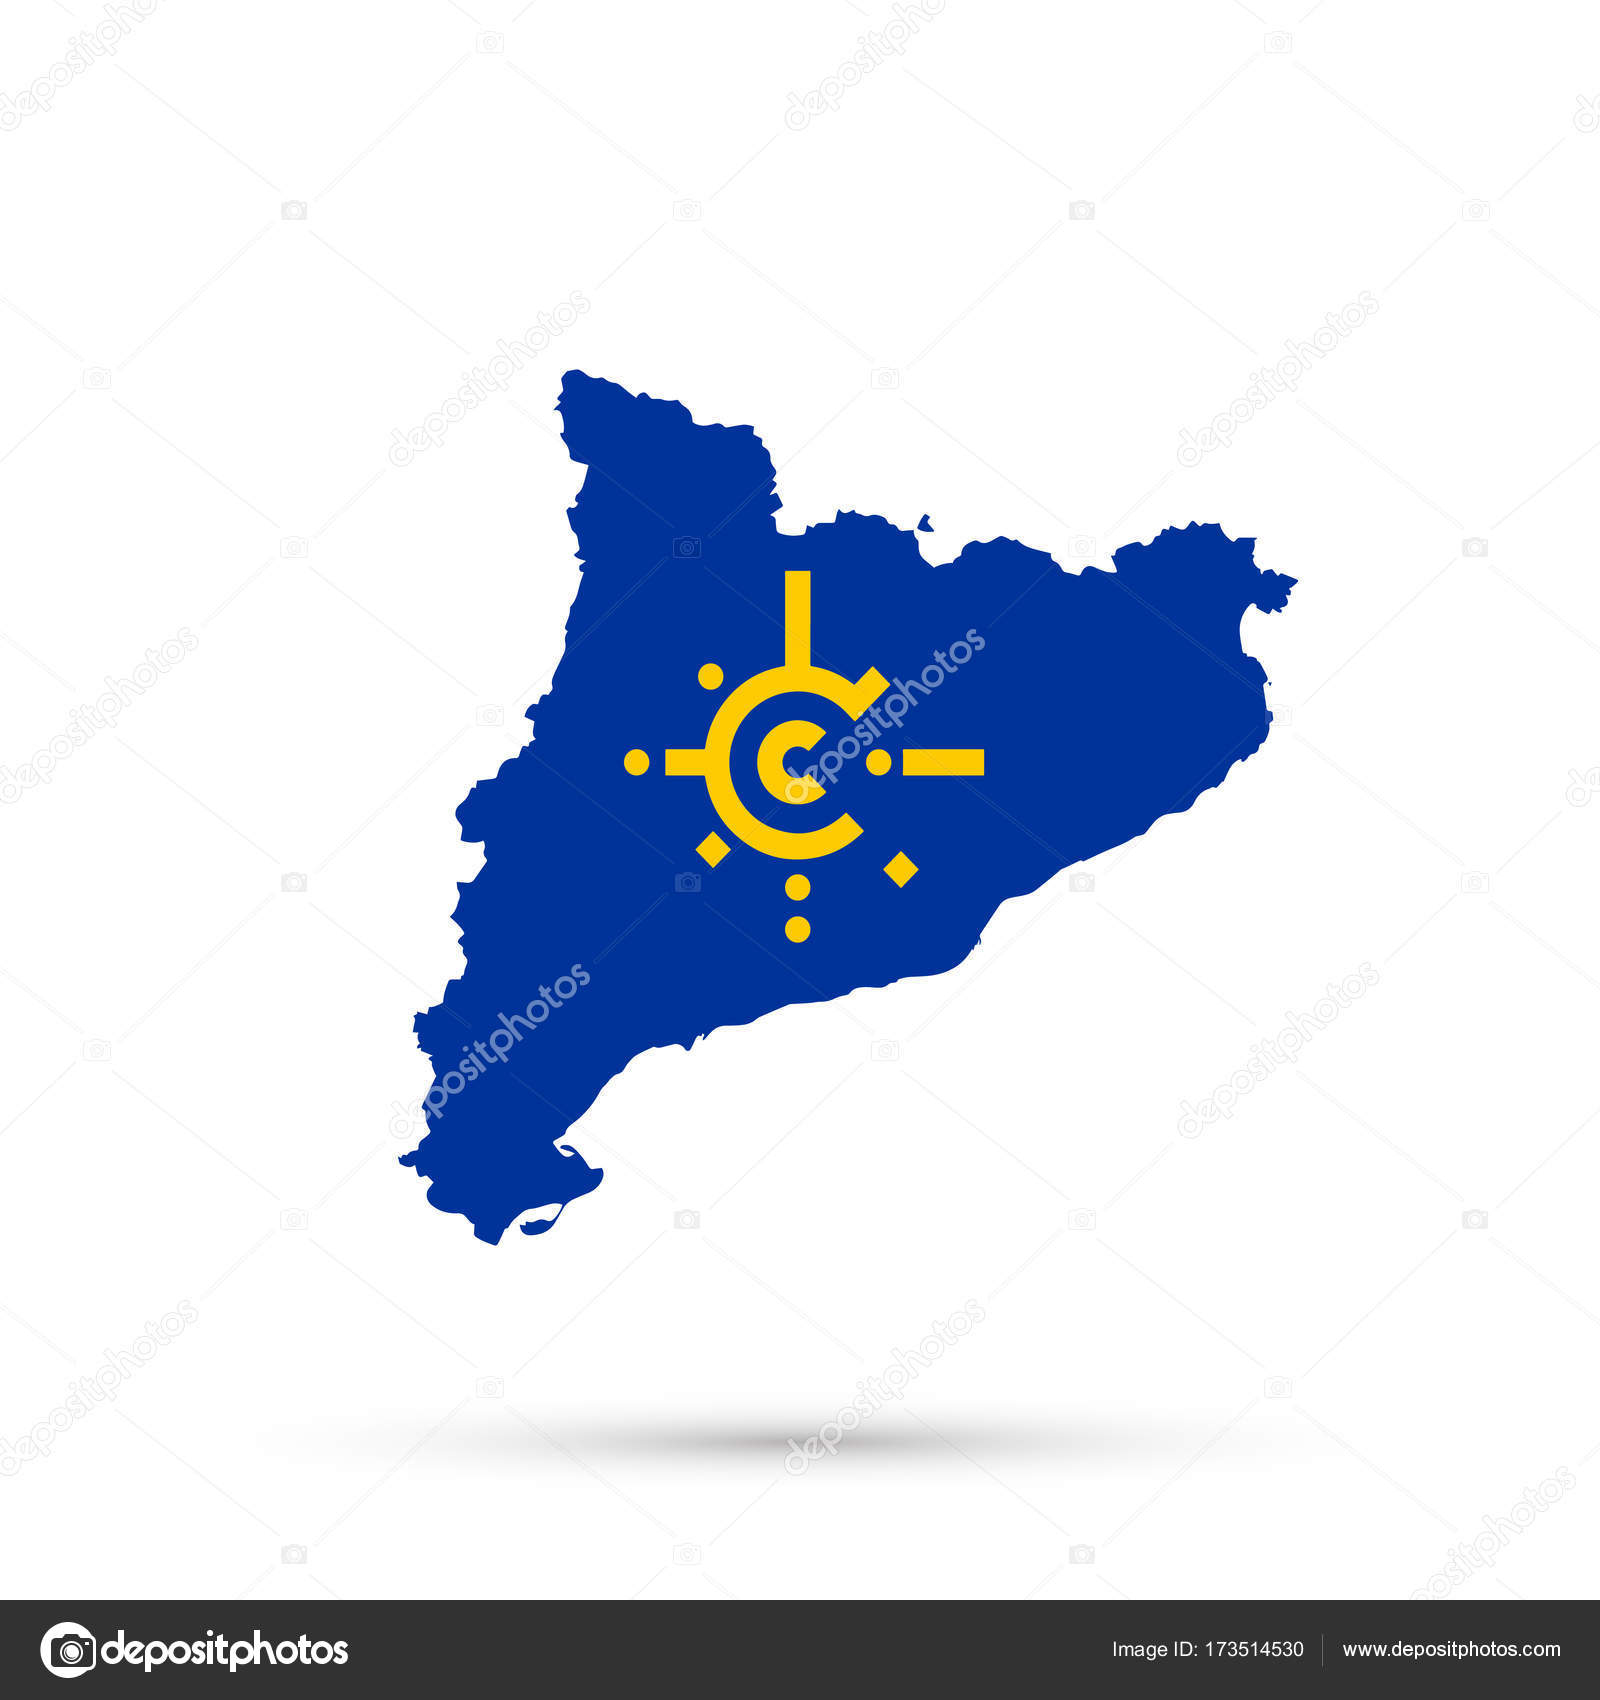 Catalonia map in central european free trade agreement cefta flag catalonia map in central european free trade agreement cefta flag colors editable vector gumiabroncs Gallery